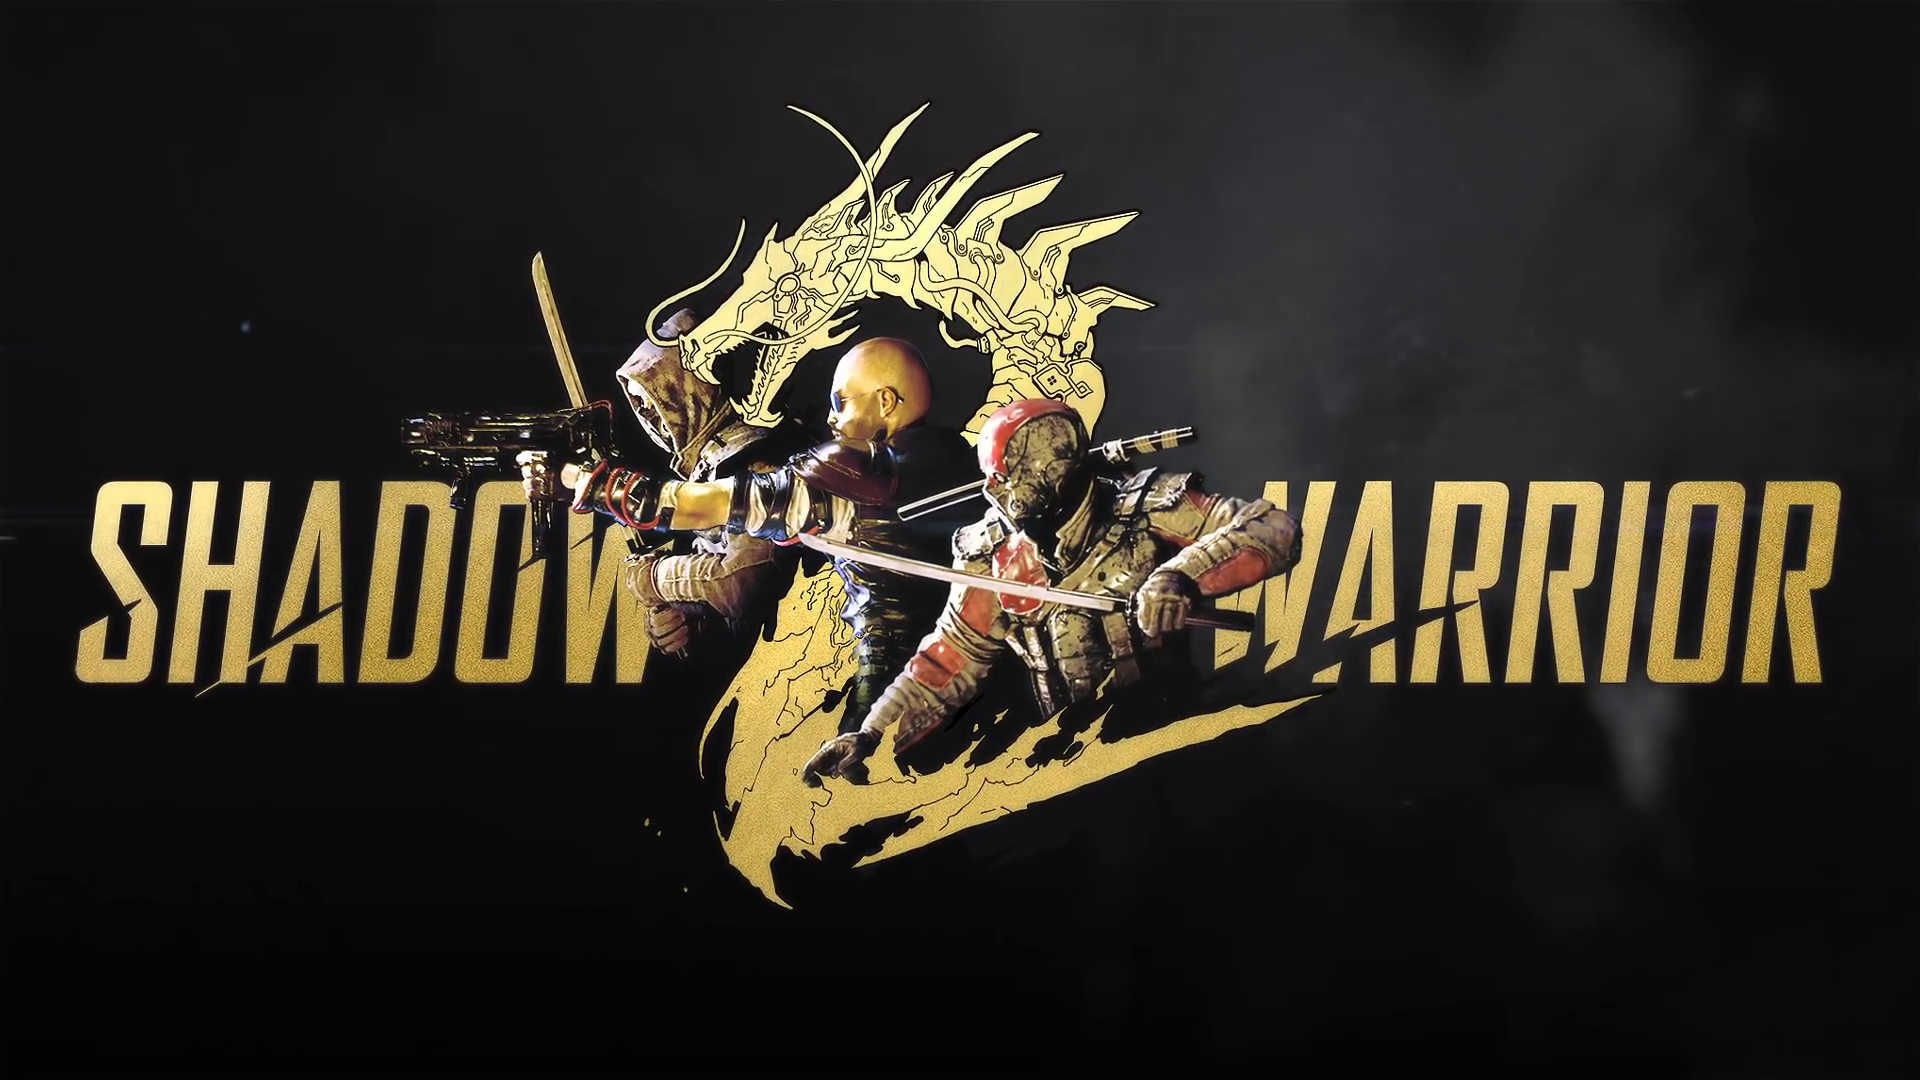 Veamos 15 gloriosos minutos de Shadow Warrior 2